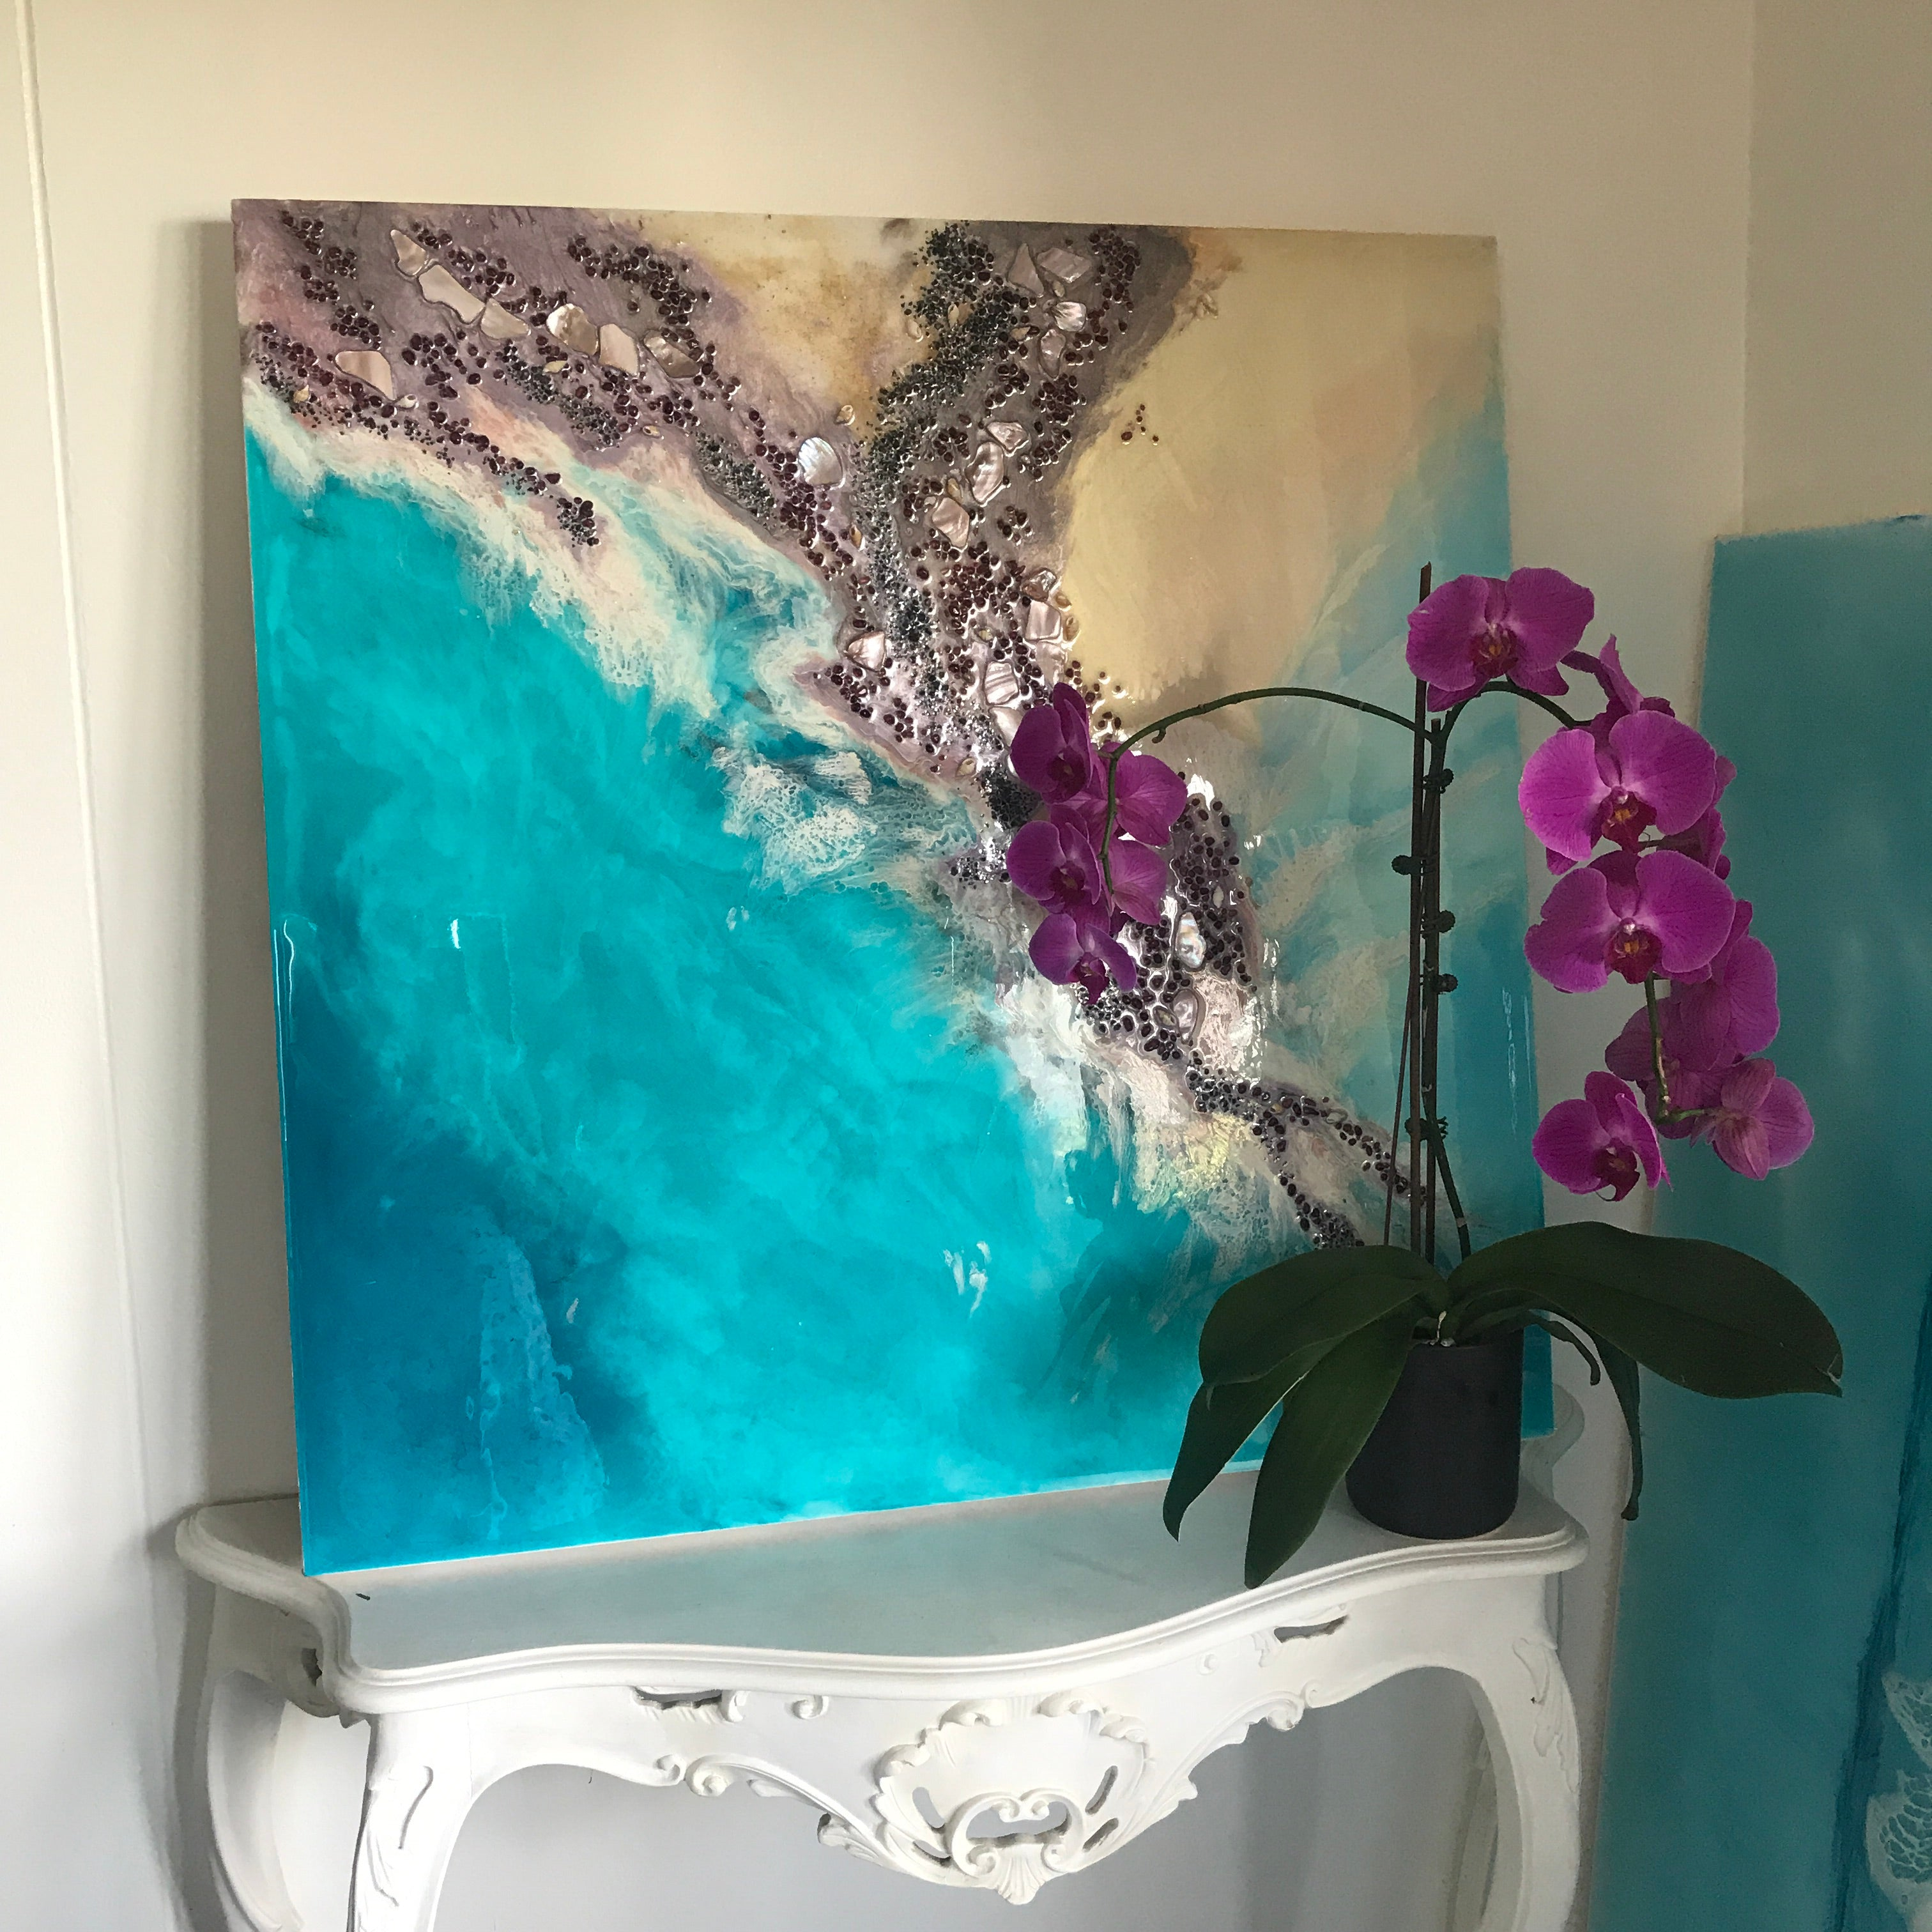 Teal Blue Ocean Wave. Byron Bay Magic. Original Artwork. Antuanelle 11 Magic with Mussels and Garnet. Abstract Seascape 90x90cm